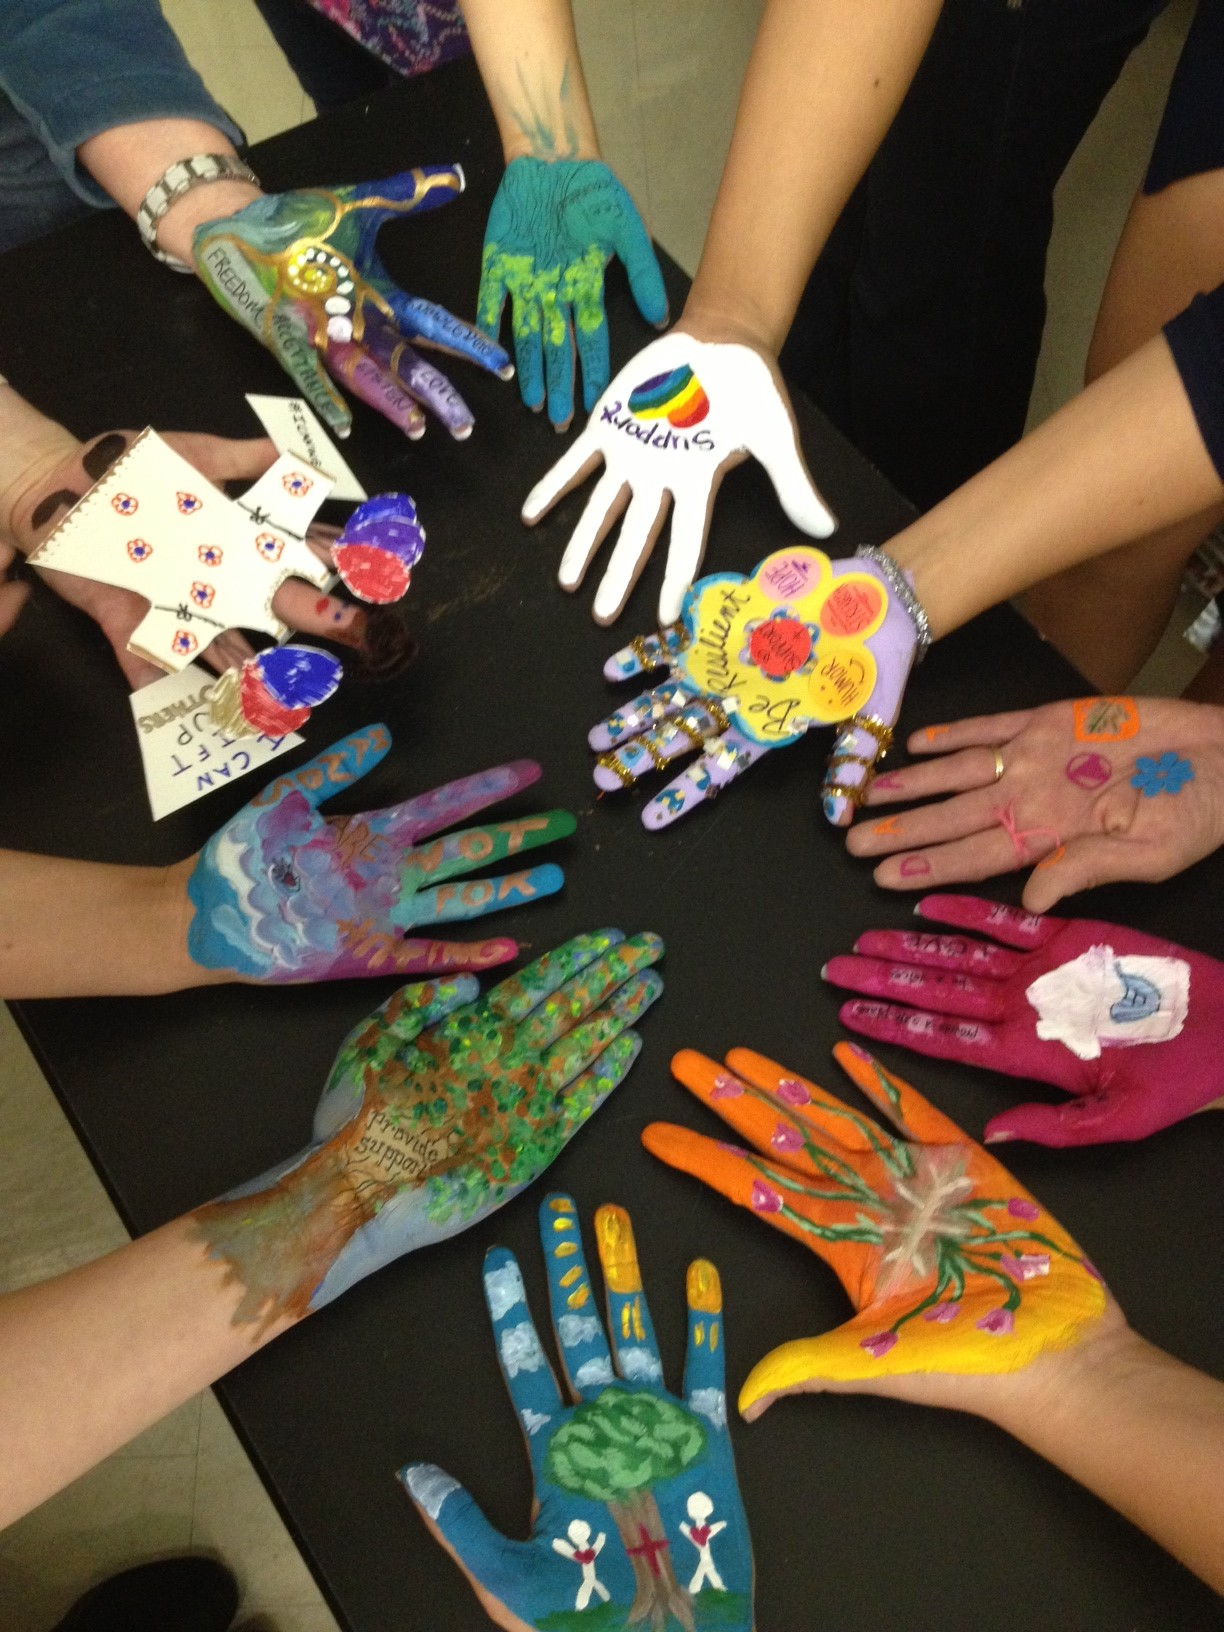 Advocacy Amp Empowerment Through Art Social Action And